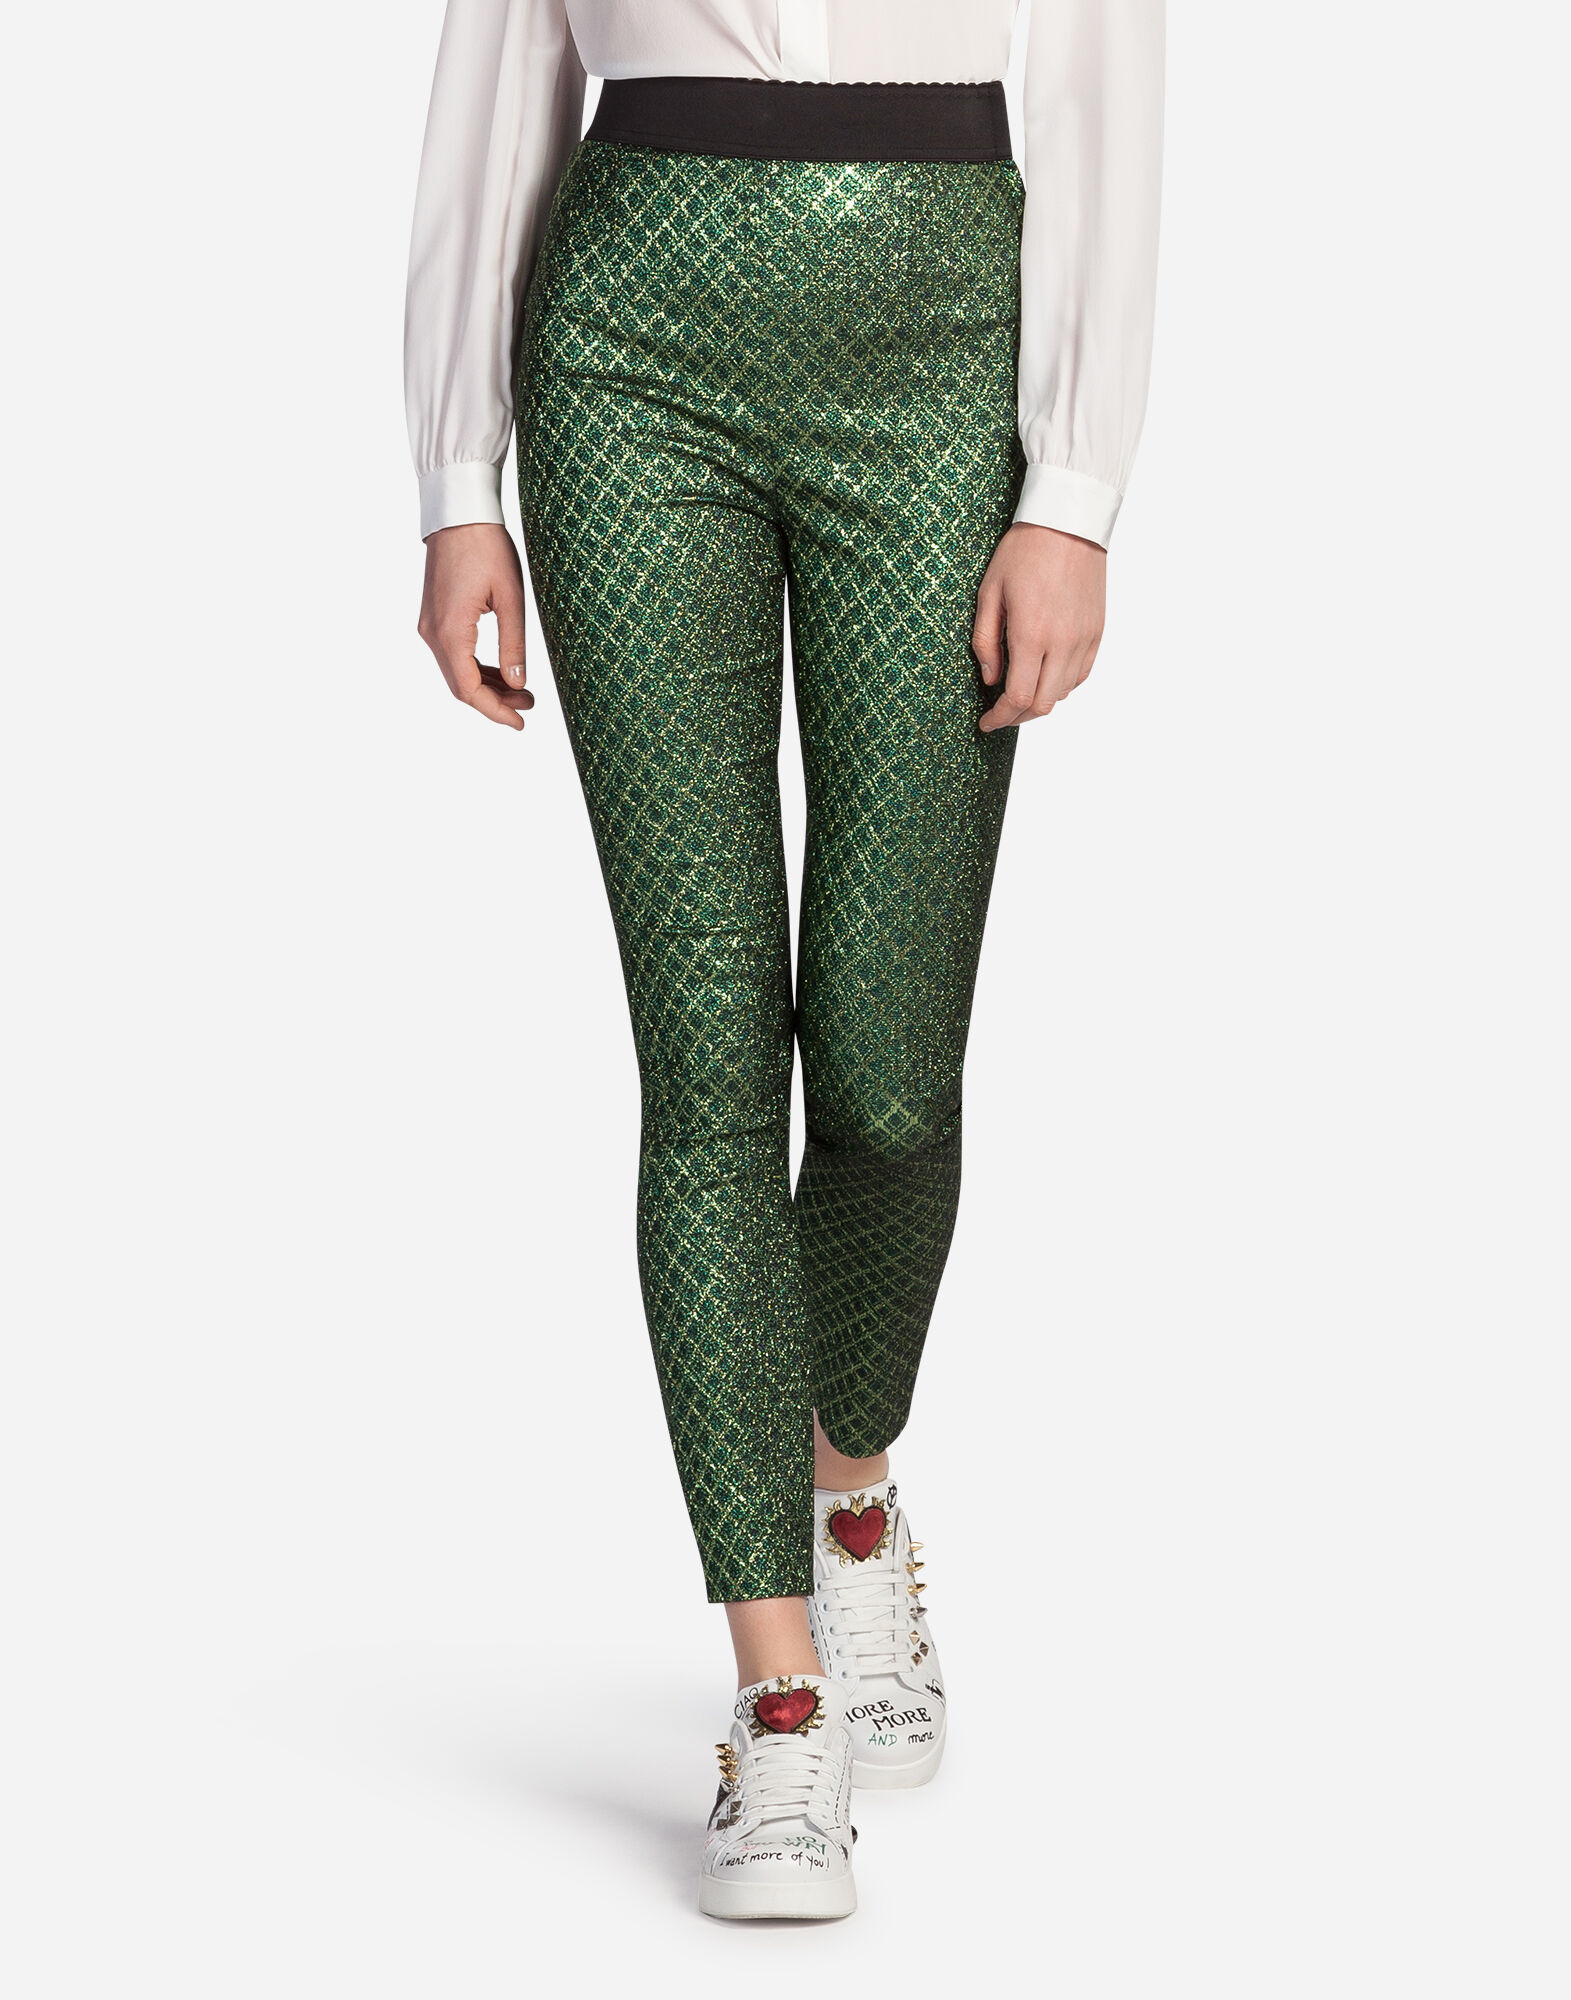 Find great deals on eBay for Jacquard Pants in Women's Pants, Clothing, Shoes and Accessories. Shop with confidence.